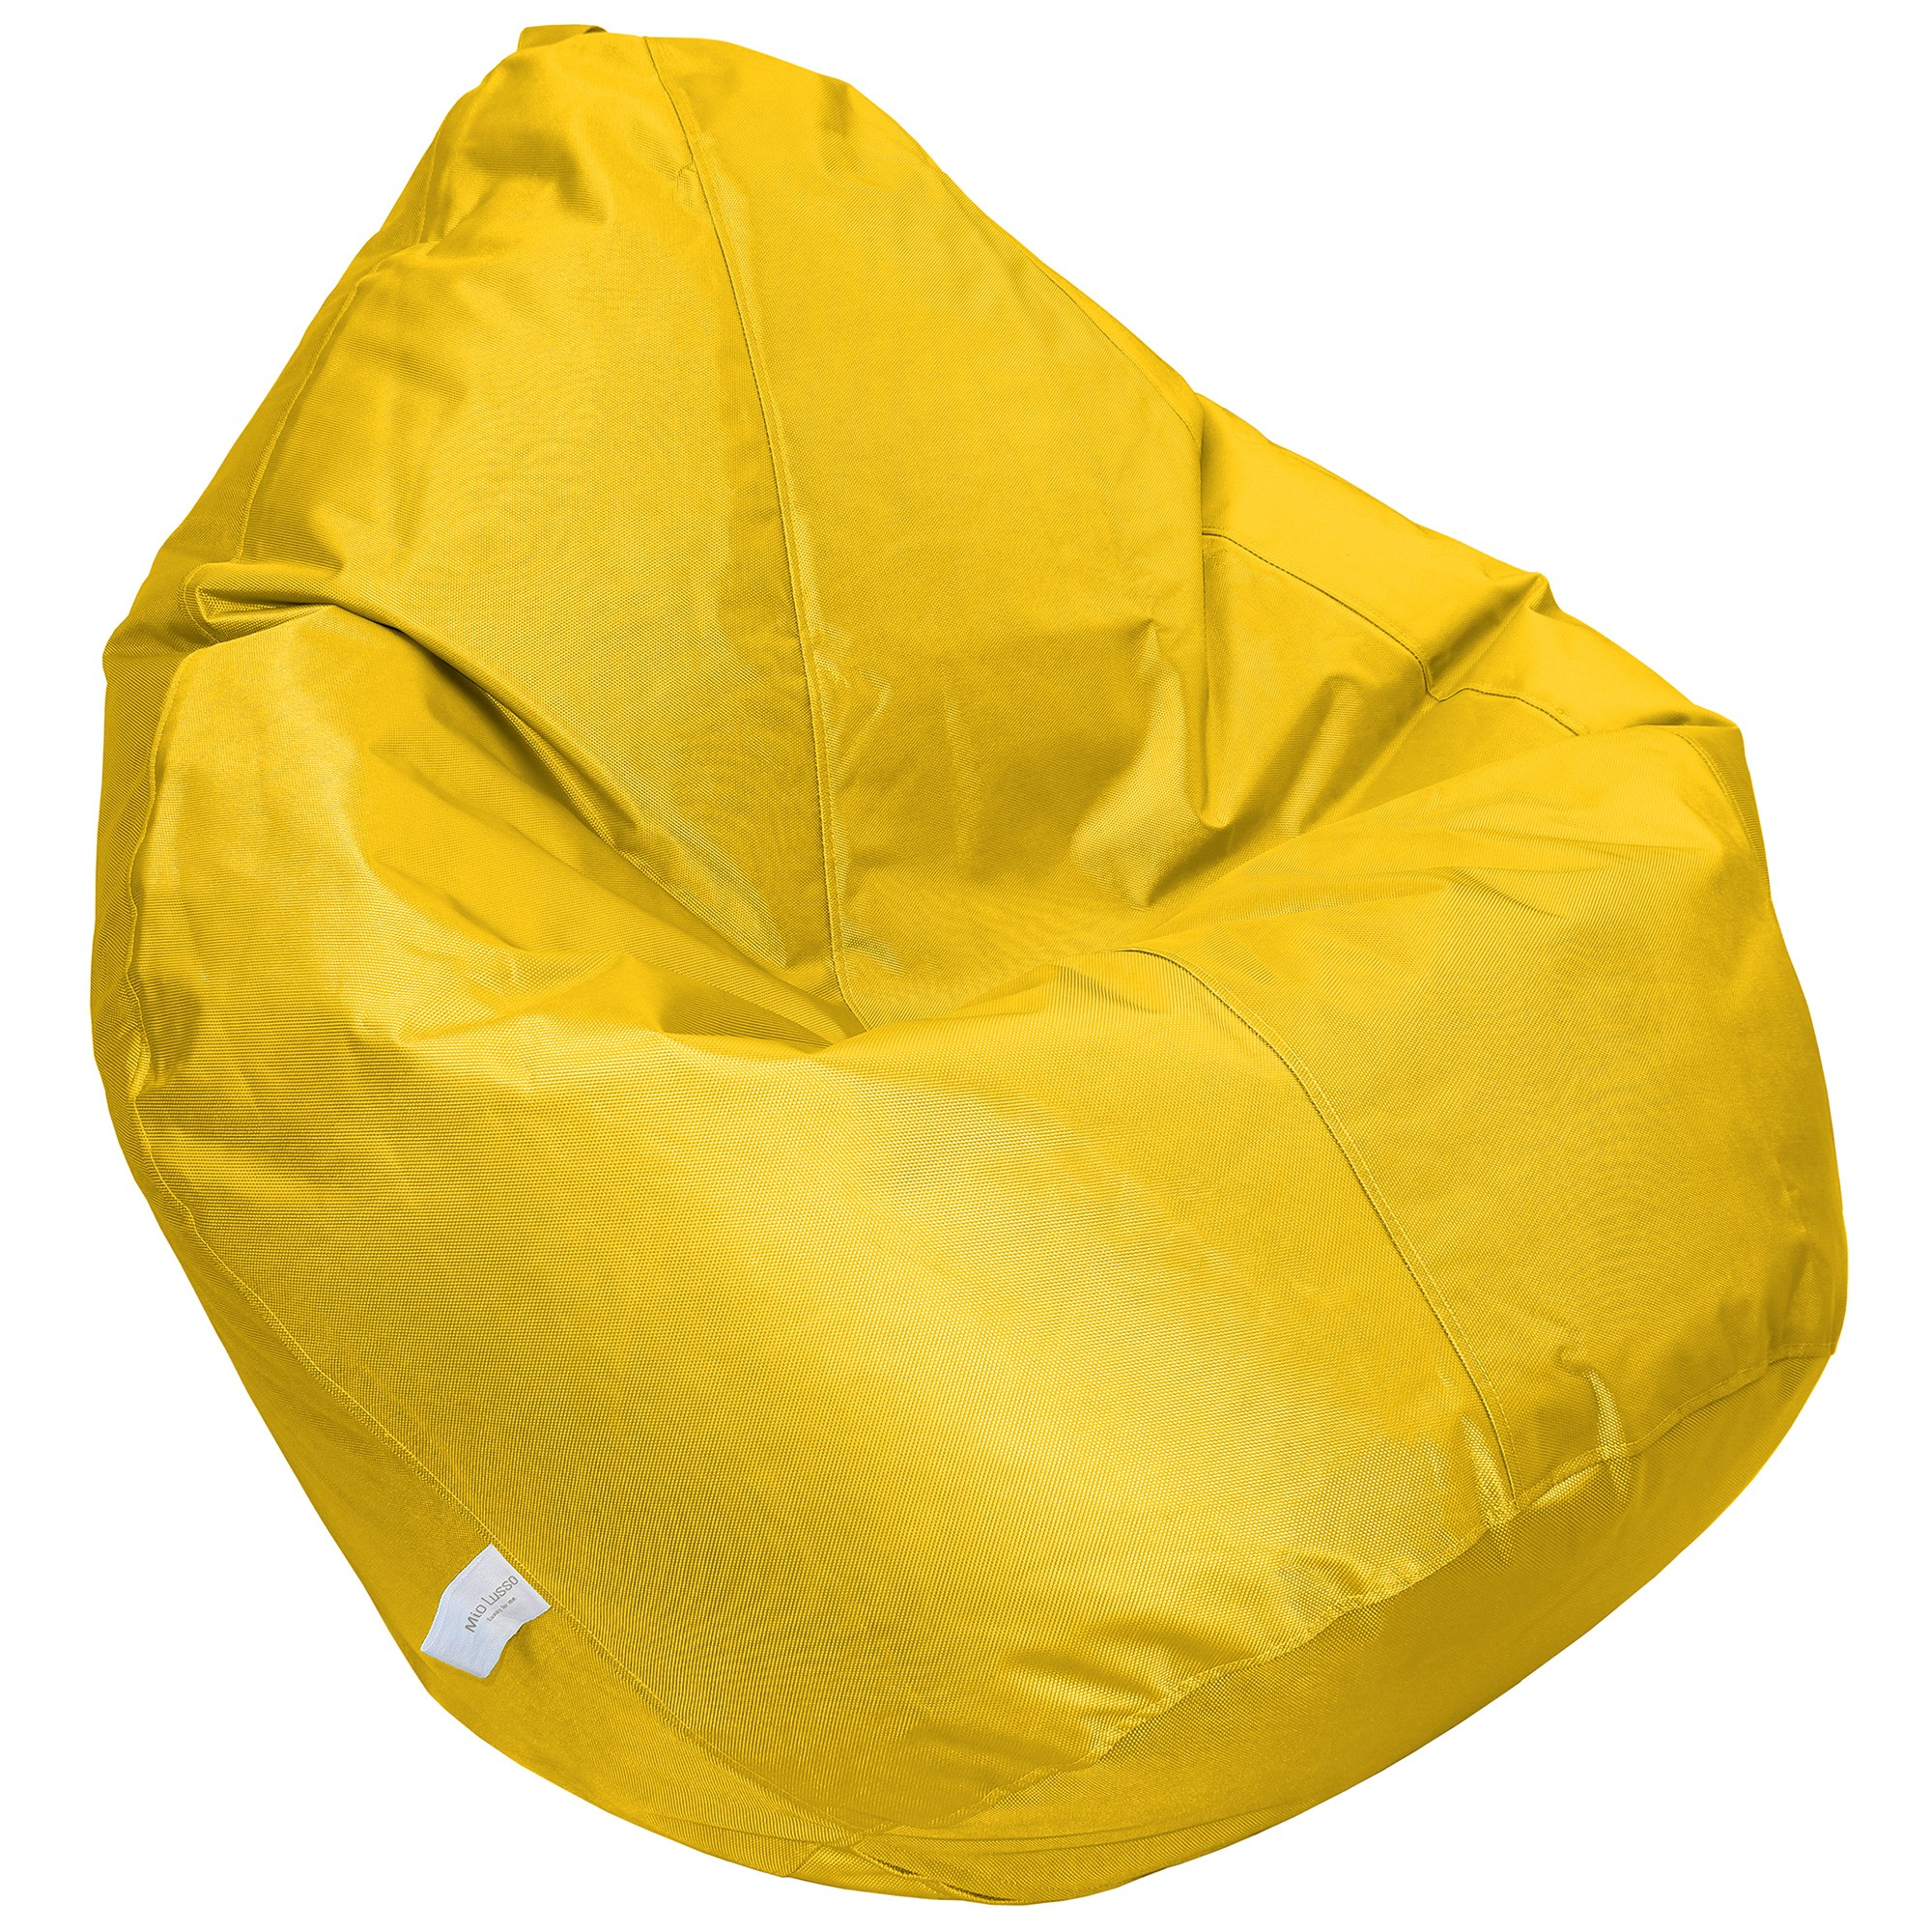 Cayman Fabric Indoor / Outdoor Bean Bag Cover, Yellow